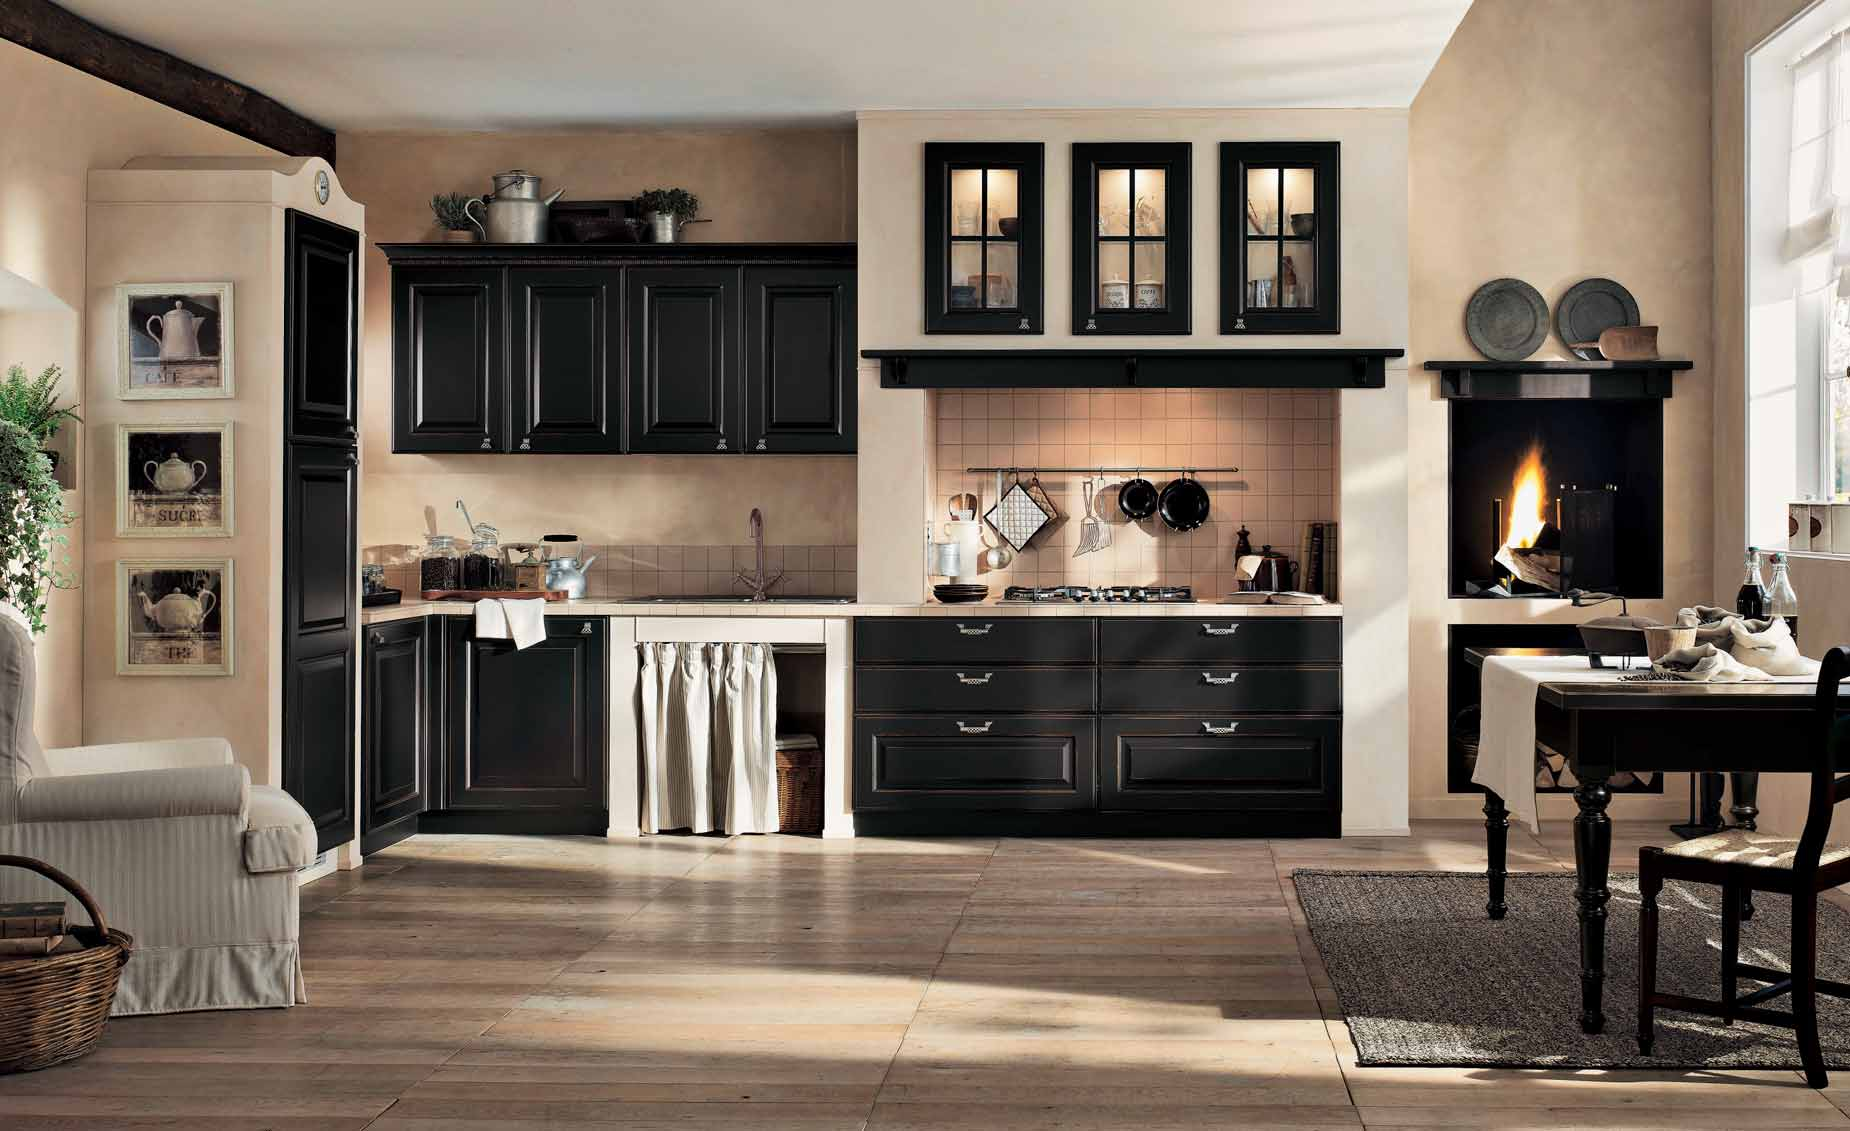 Interior Exterior Plan Classic Kitchen In Black And Cream Finish